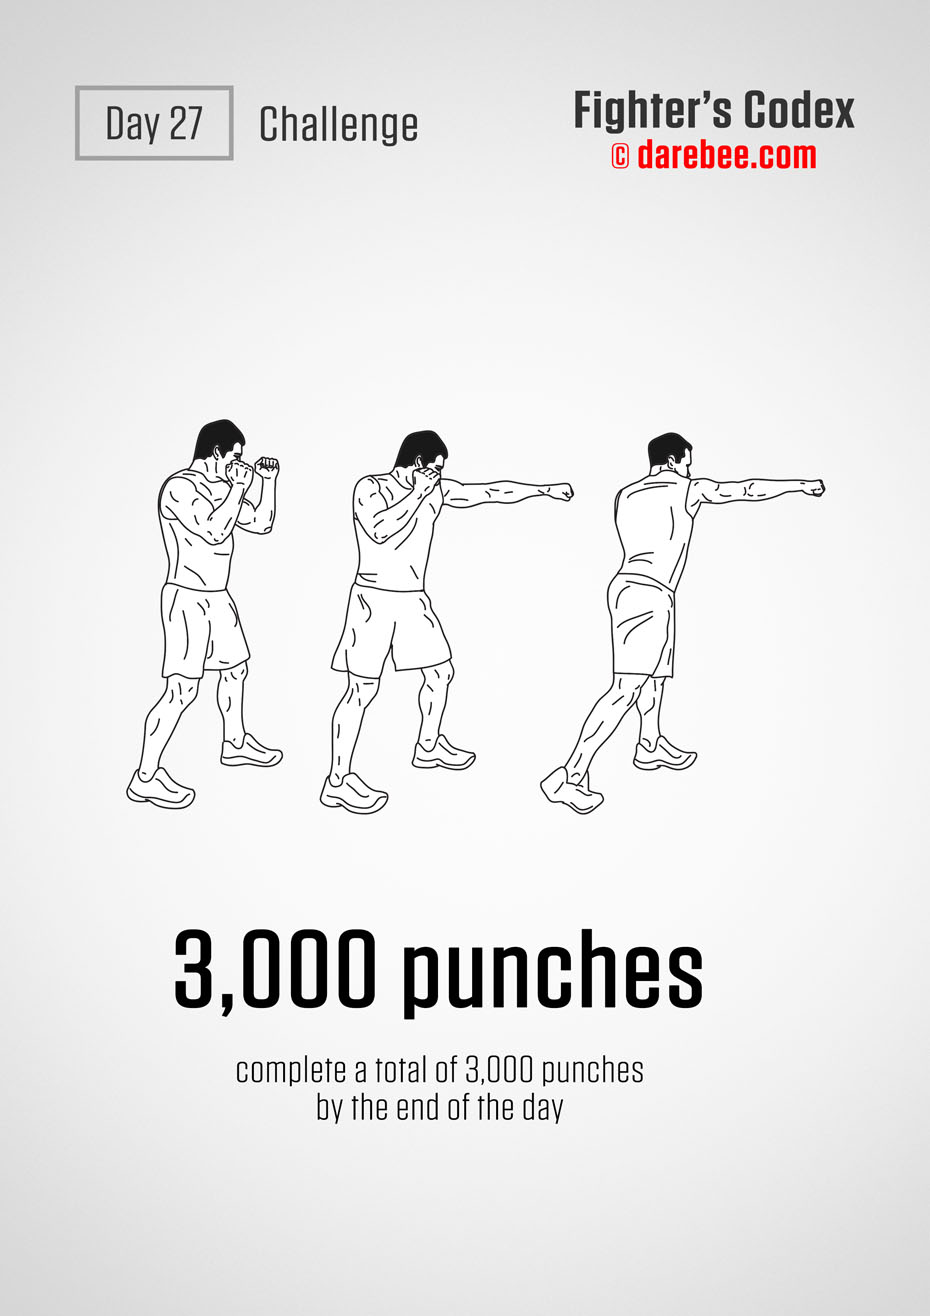 Fighters Codex by DAREBEE